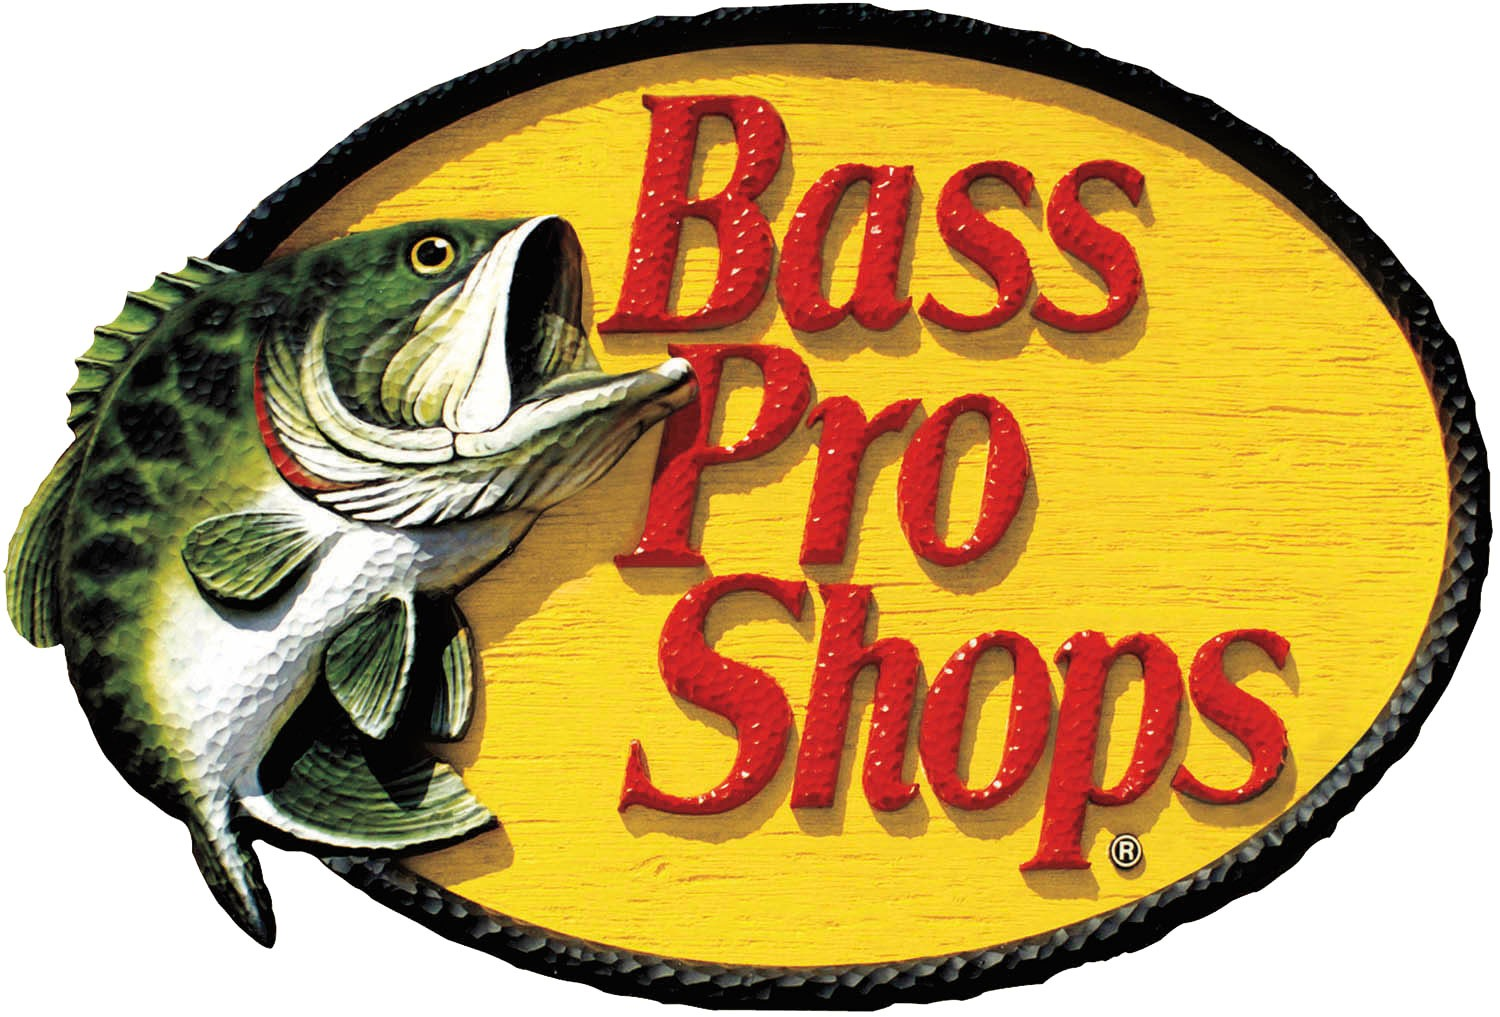 Bass Pro Shops July 2018 Coupon Codes, Sales & More